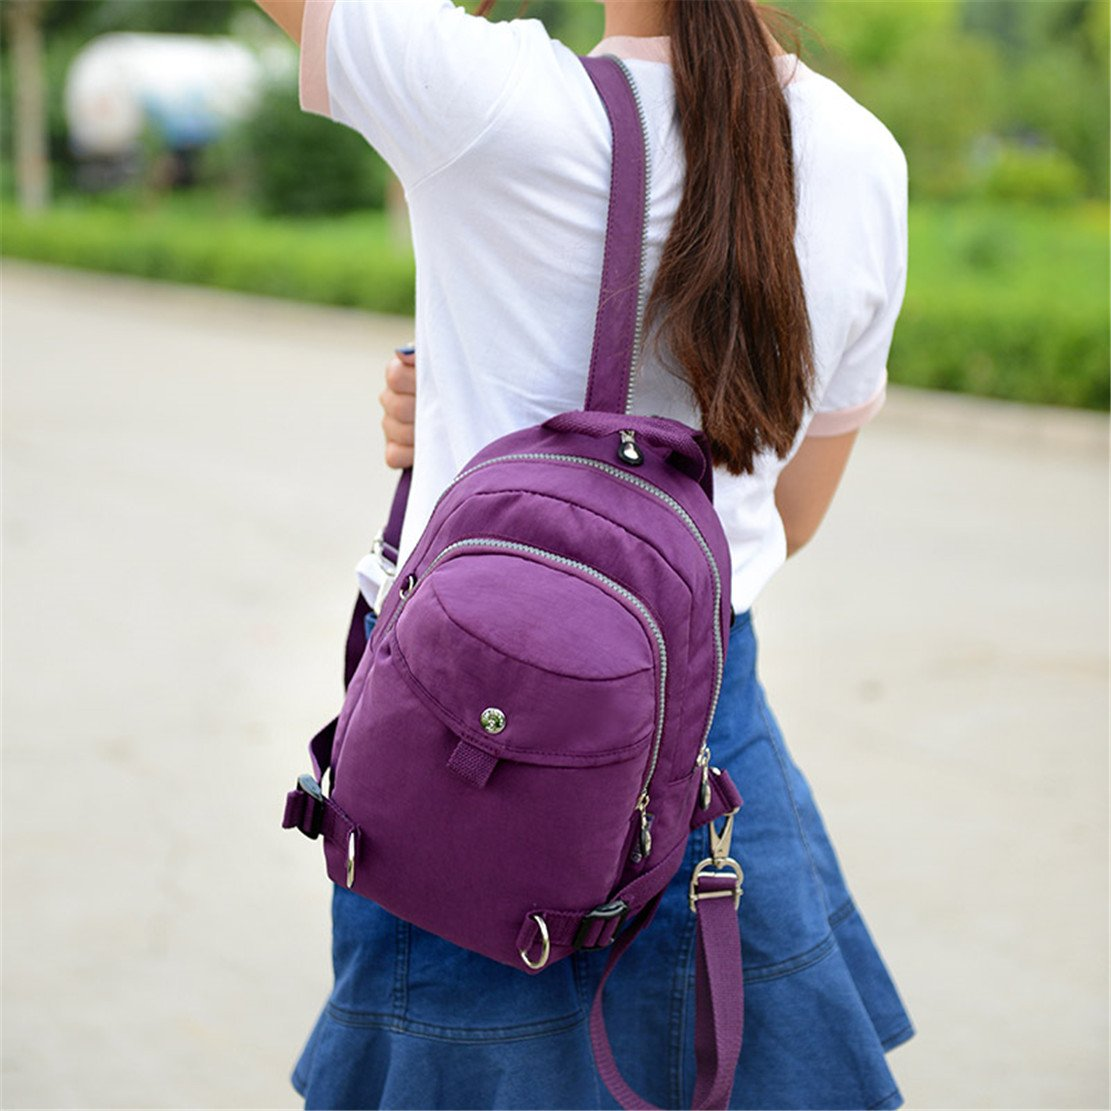 TianHengYi Womens Lightweight Small Nylon Backpack Casual Strong Mini Backpack Multipurpose Daypack for Girls Cycling Hiking Camping Travel Outdoor Disneyland Deep Purple